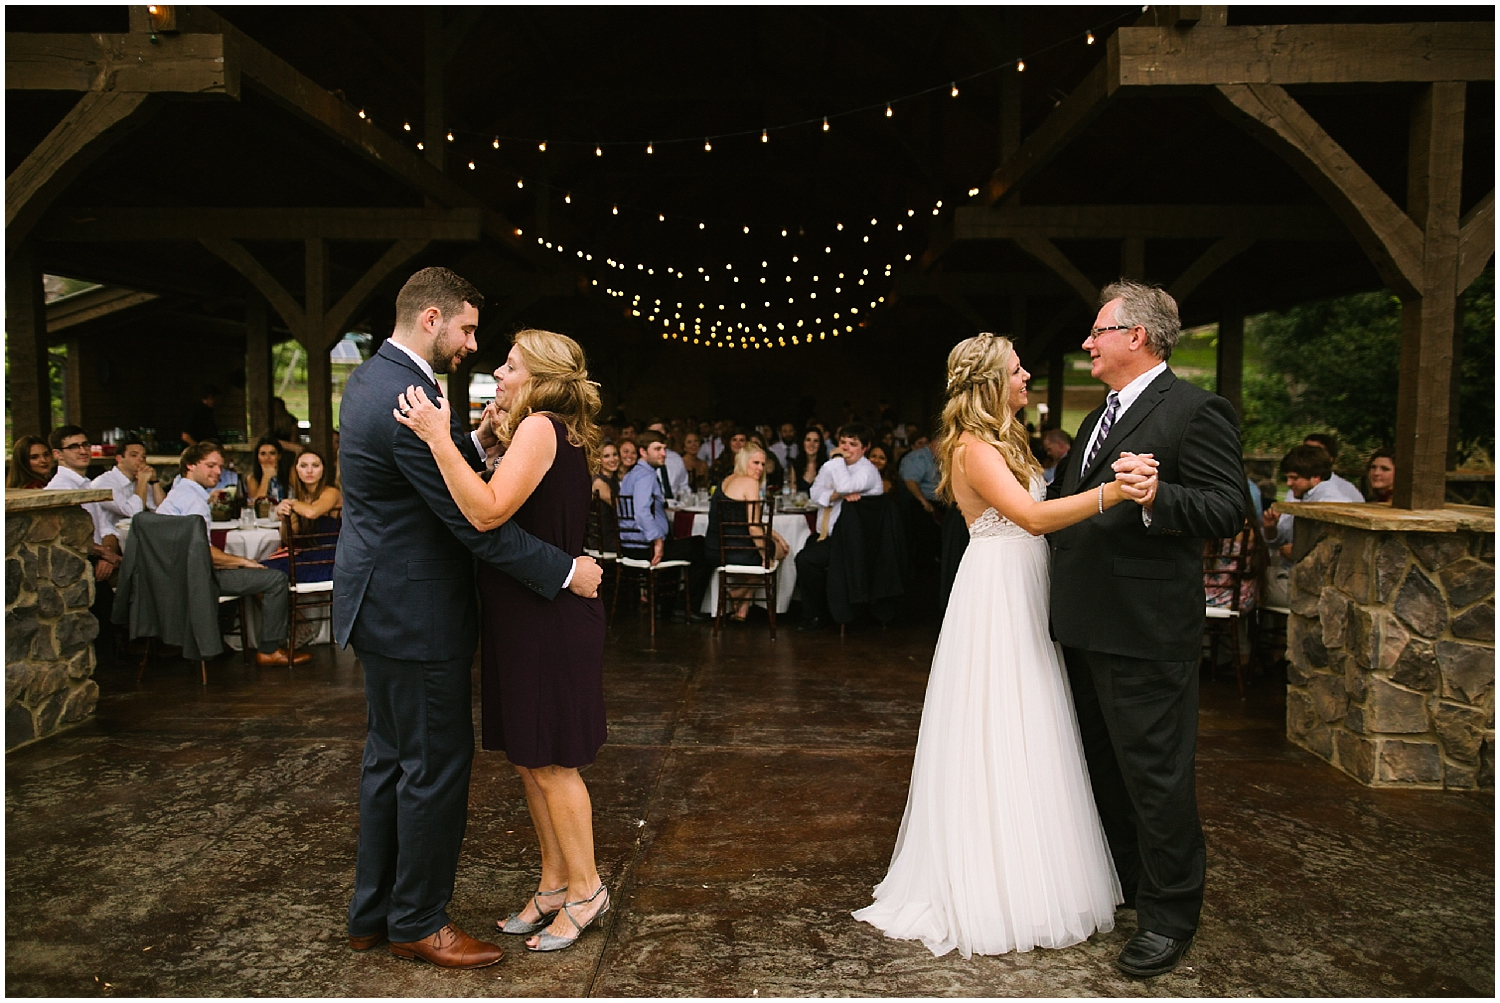 wedding dance at debarge winery